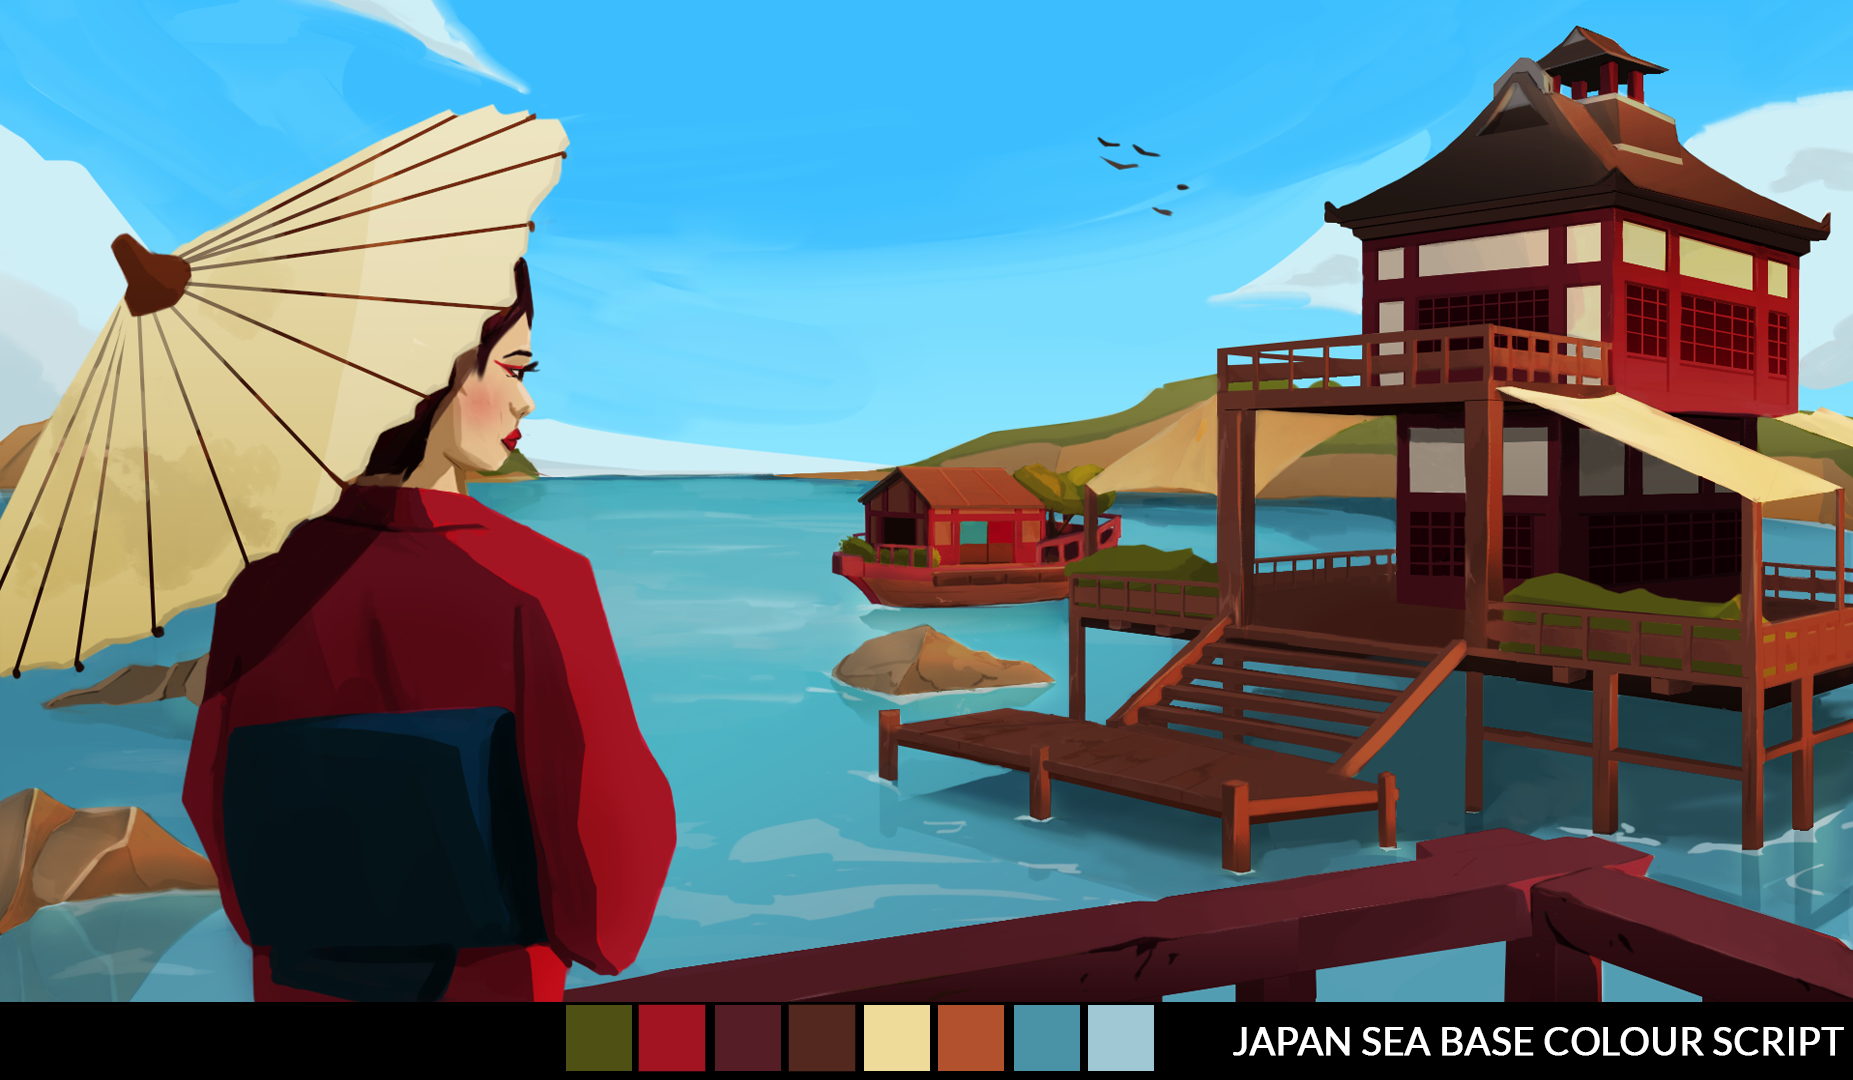 Japanese Sea Base Colour Script